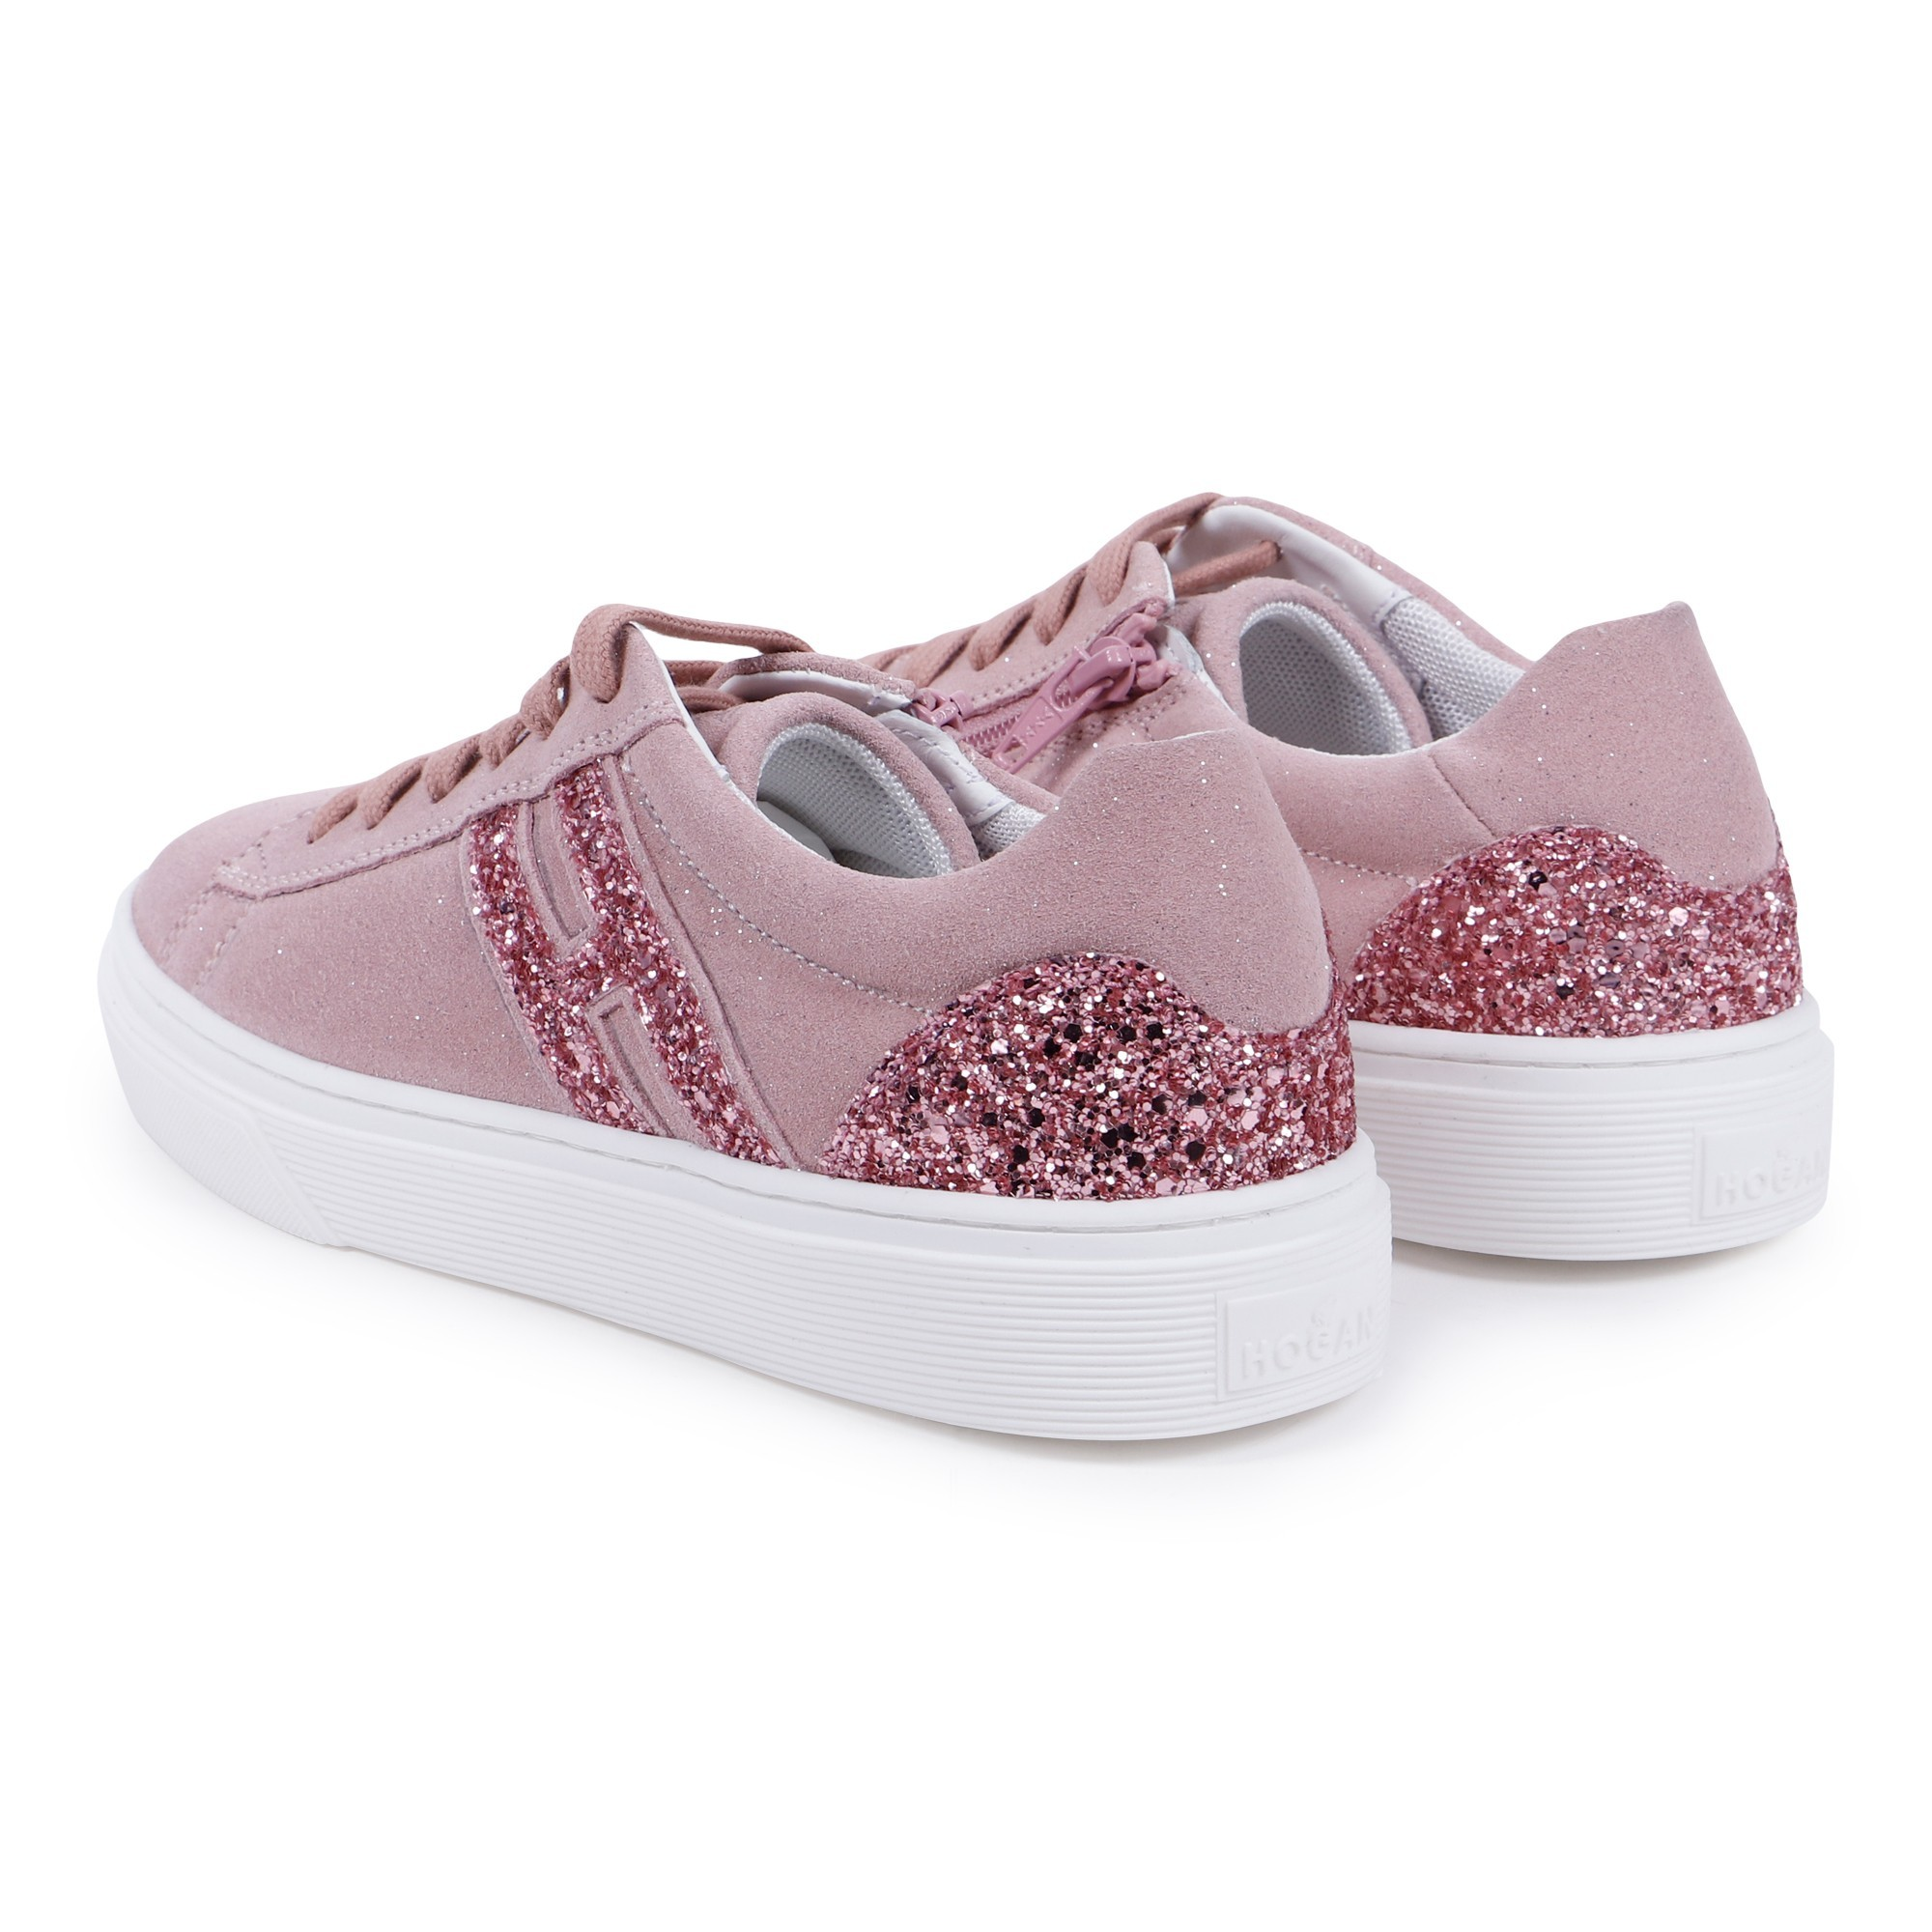 HOGAN GIRLS SHOES CHILD LEATHER SNEAKERS NEW INTERACTIVE PINK 559